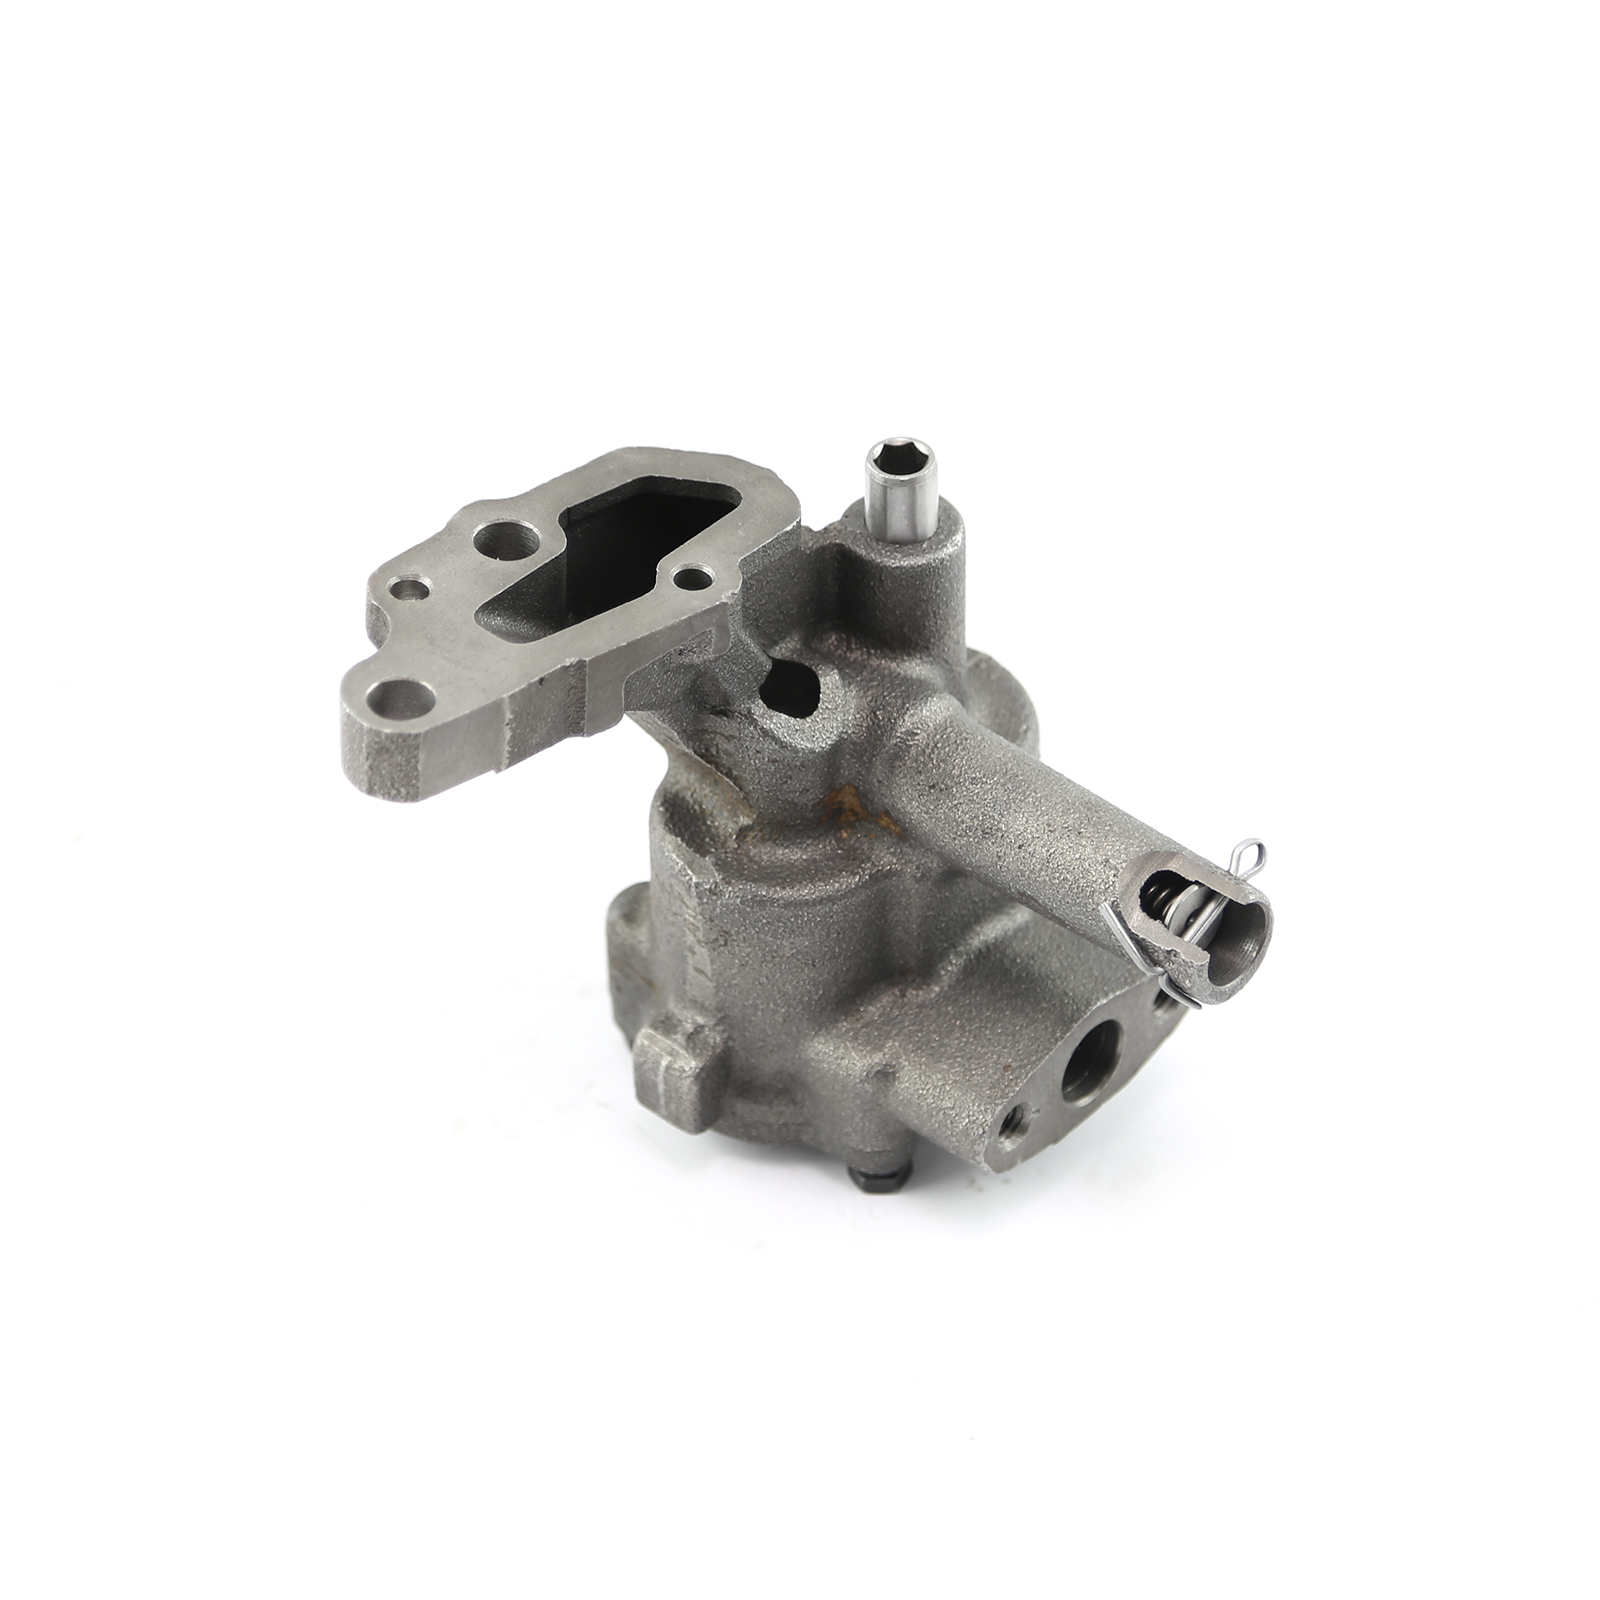 Oldmobile 455 Standard Volume / Pressure Oil Pump